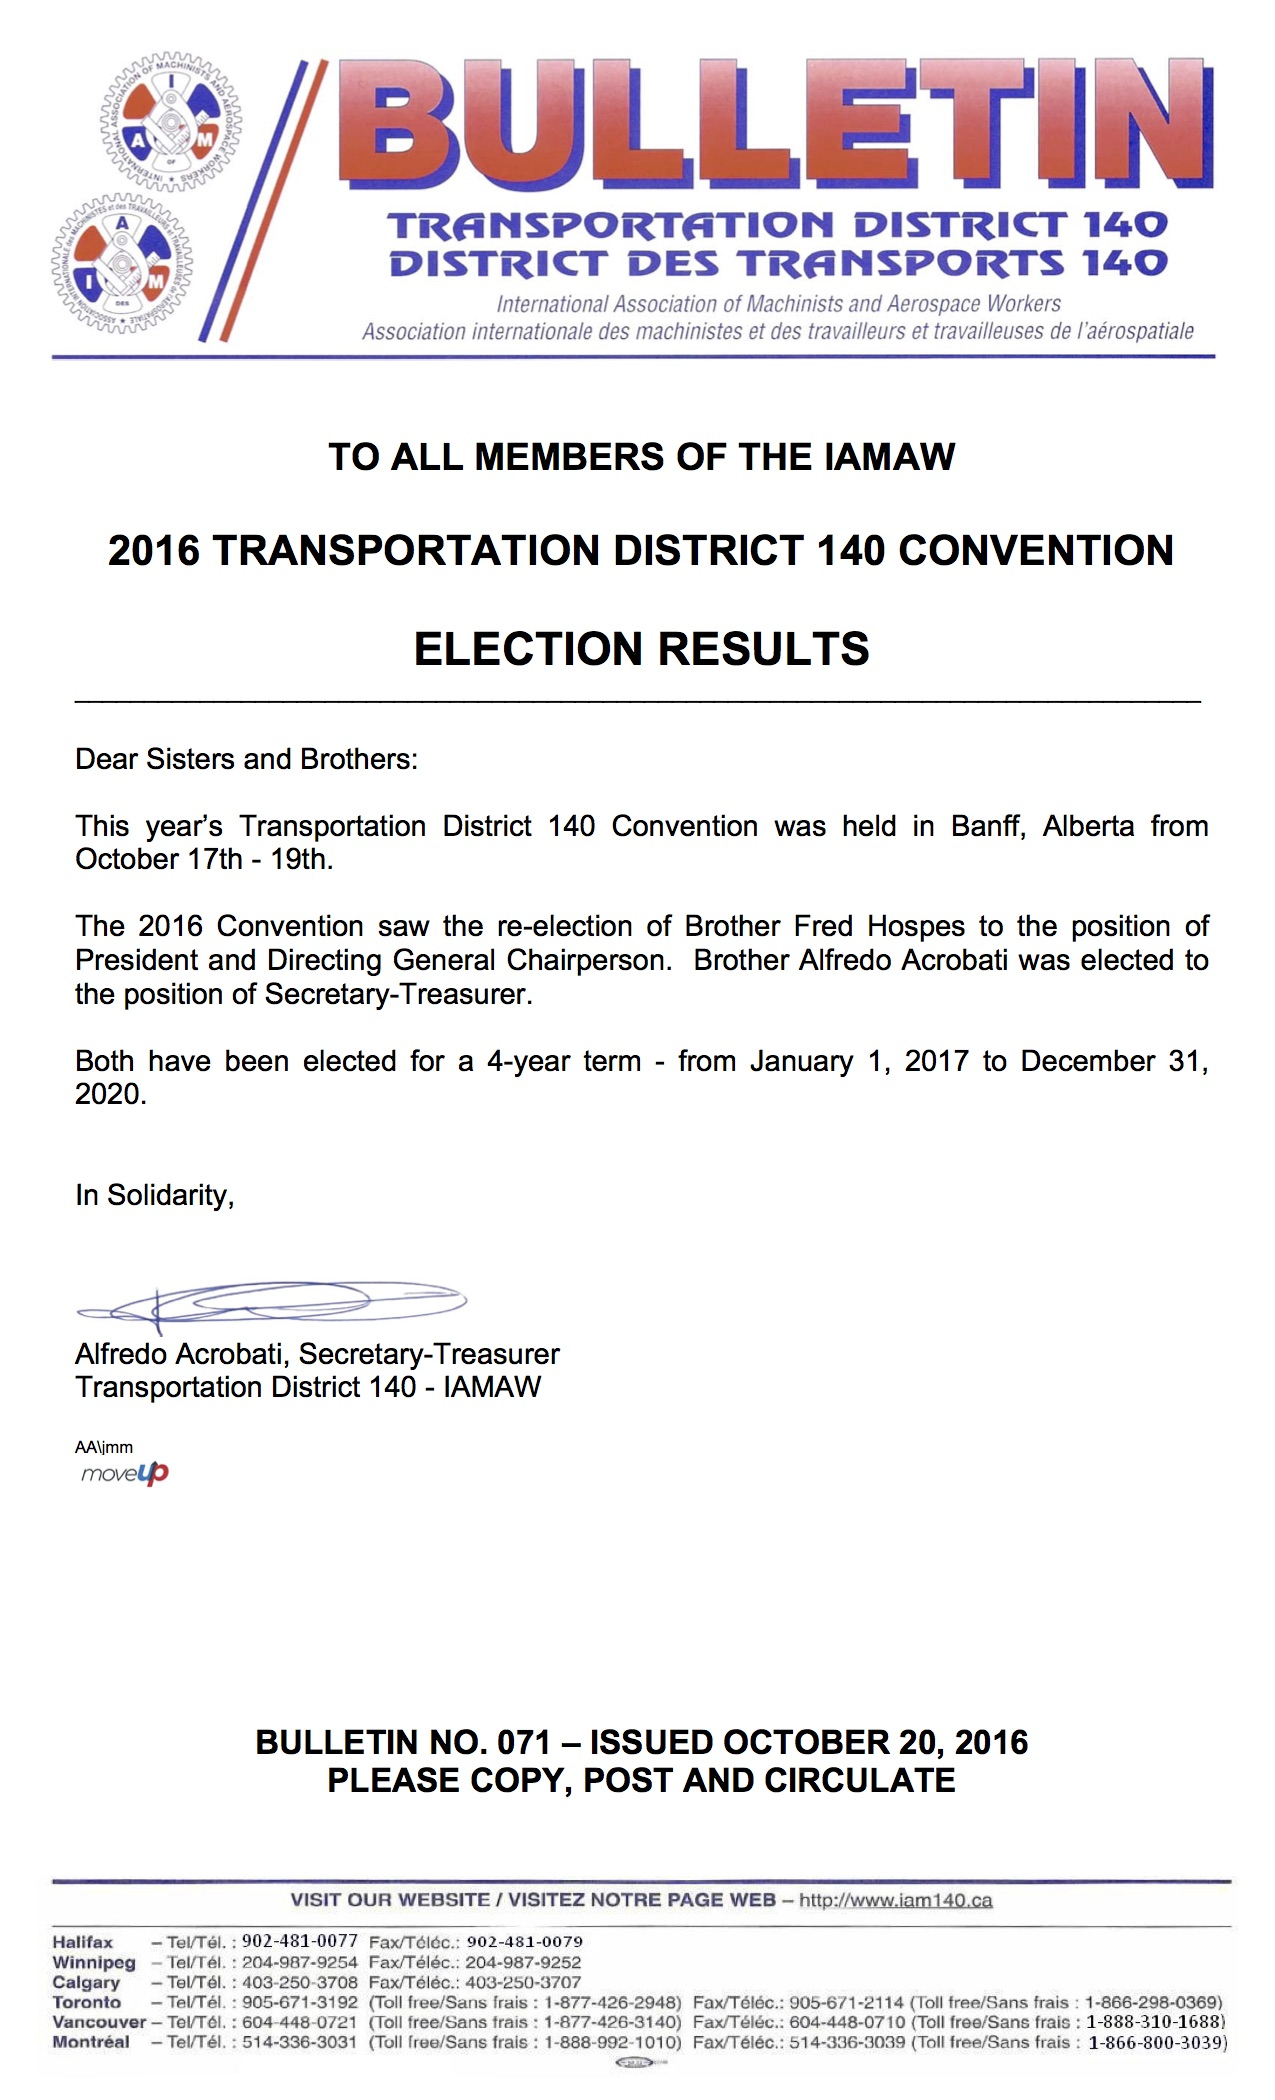 bulletin-071-district-lodge-convention-election-results-october-20-2016-english